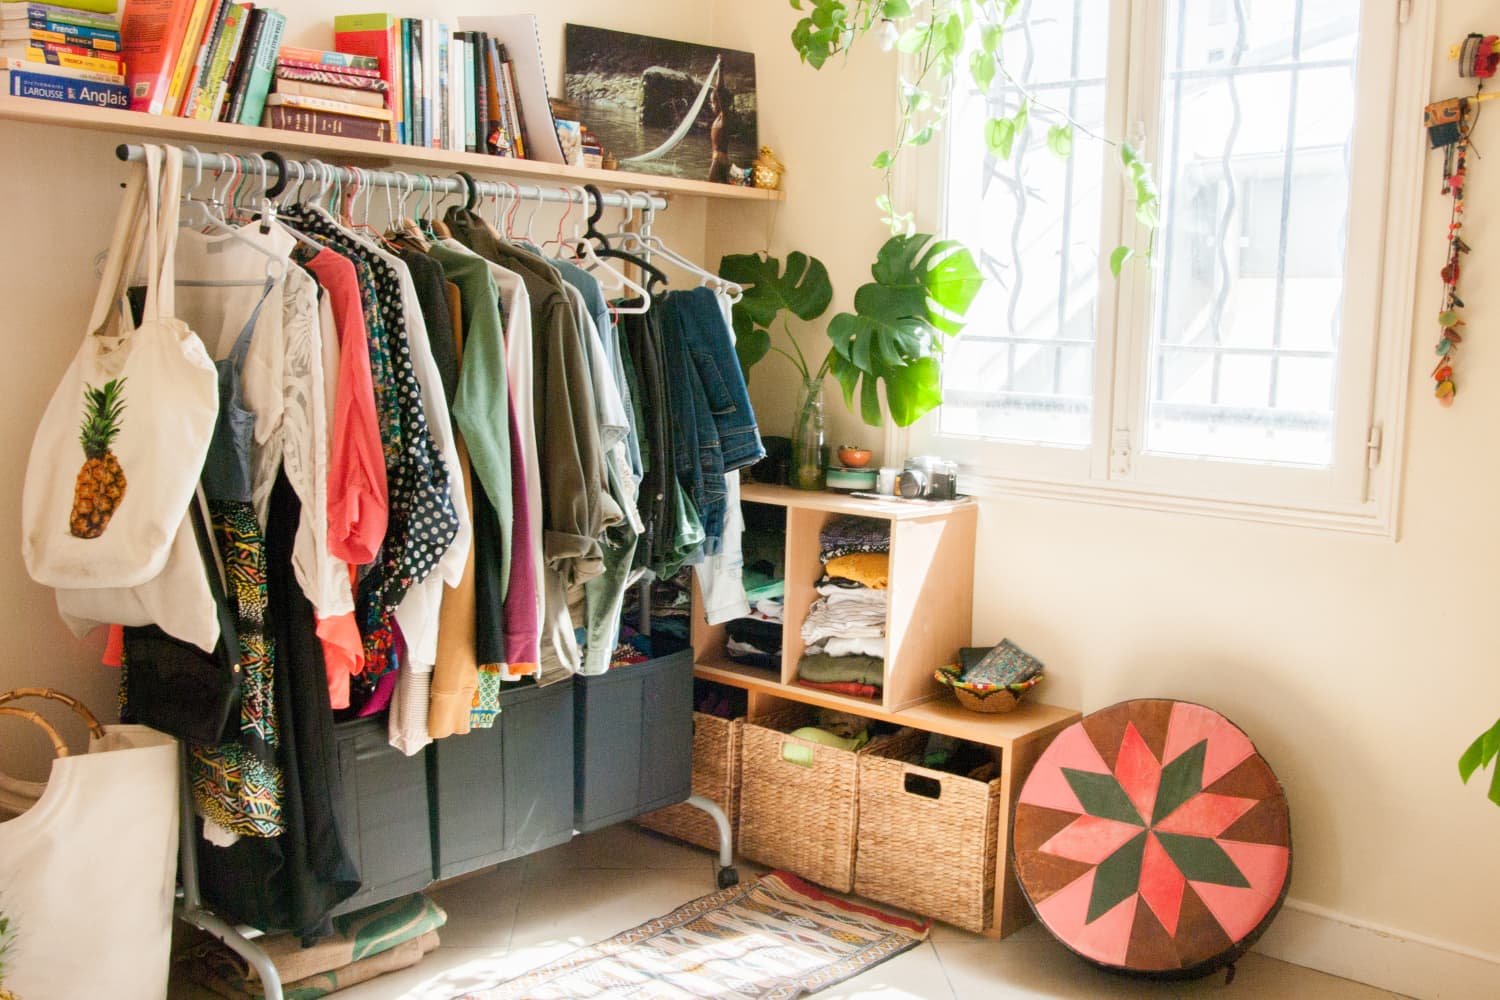 6 Mistakes to Avoid If You Want to Make Money From Cleaning Out Your Closet — and What to Do Instead